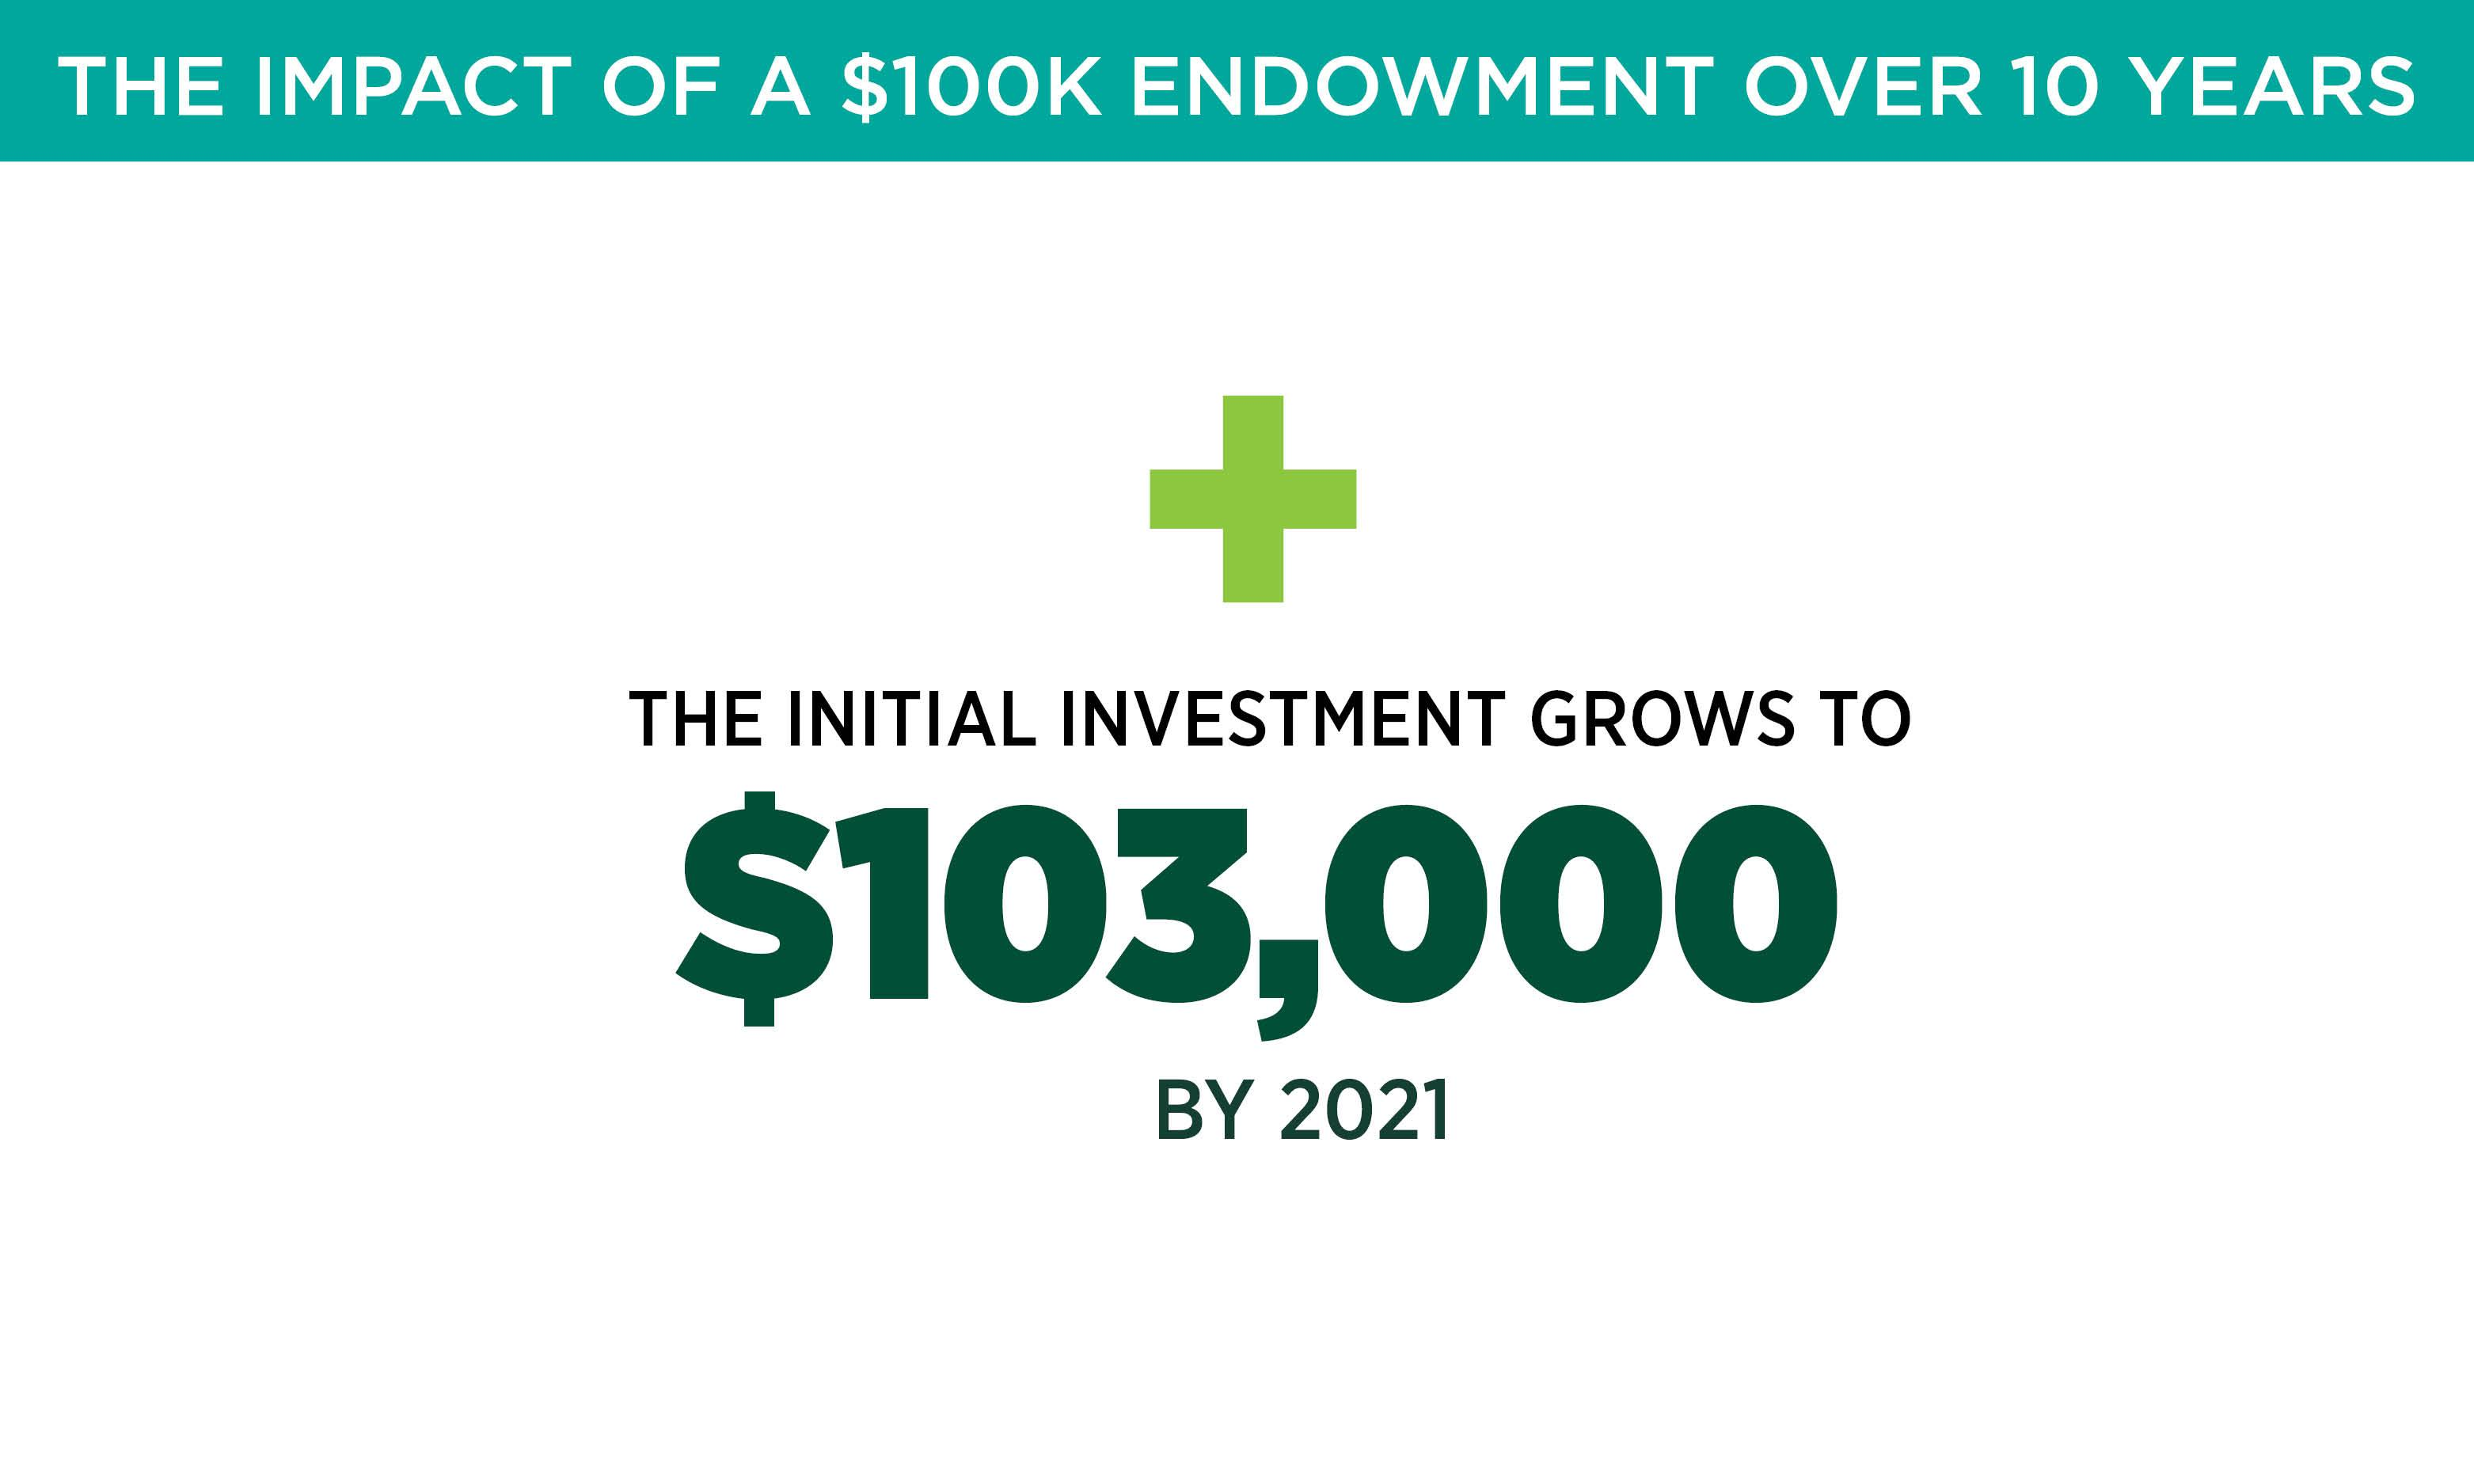 The initial investment grows to $103,000 by 2021.